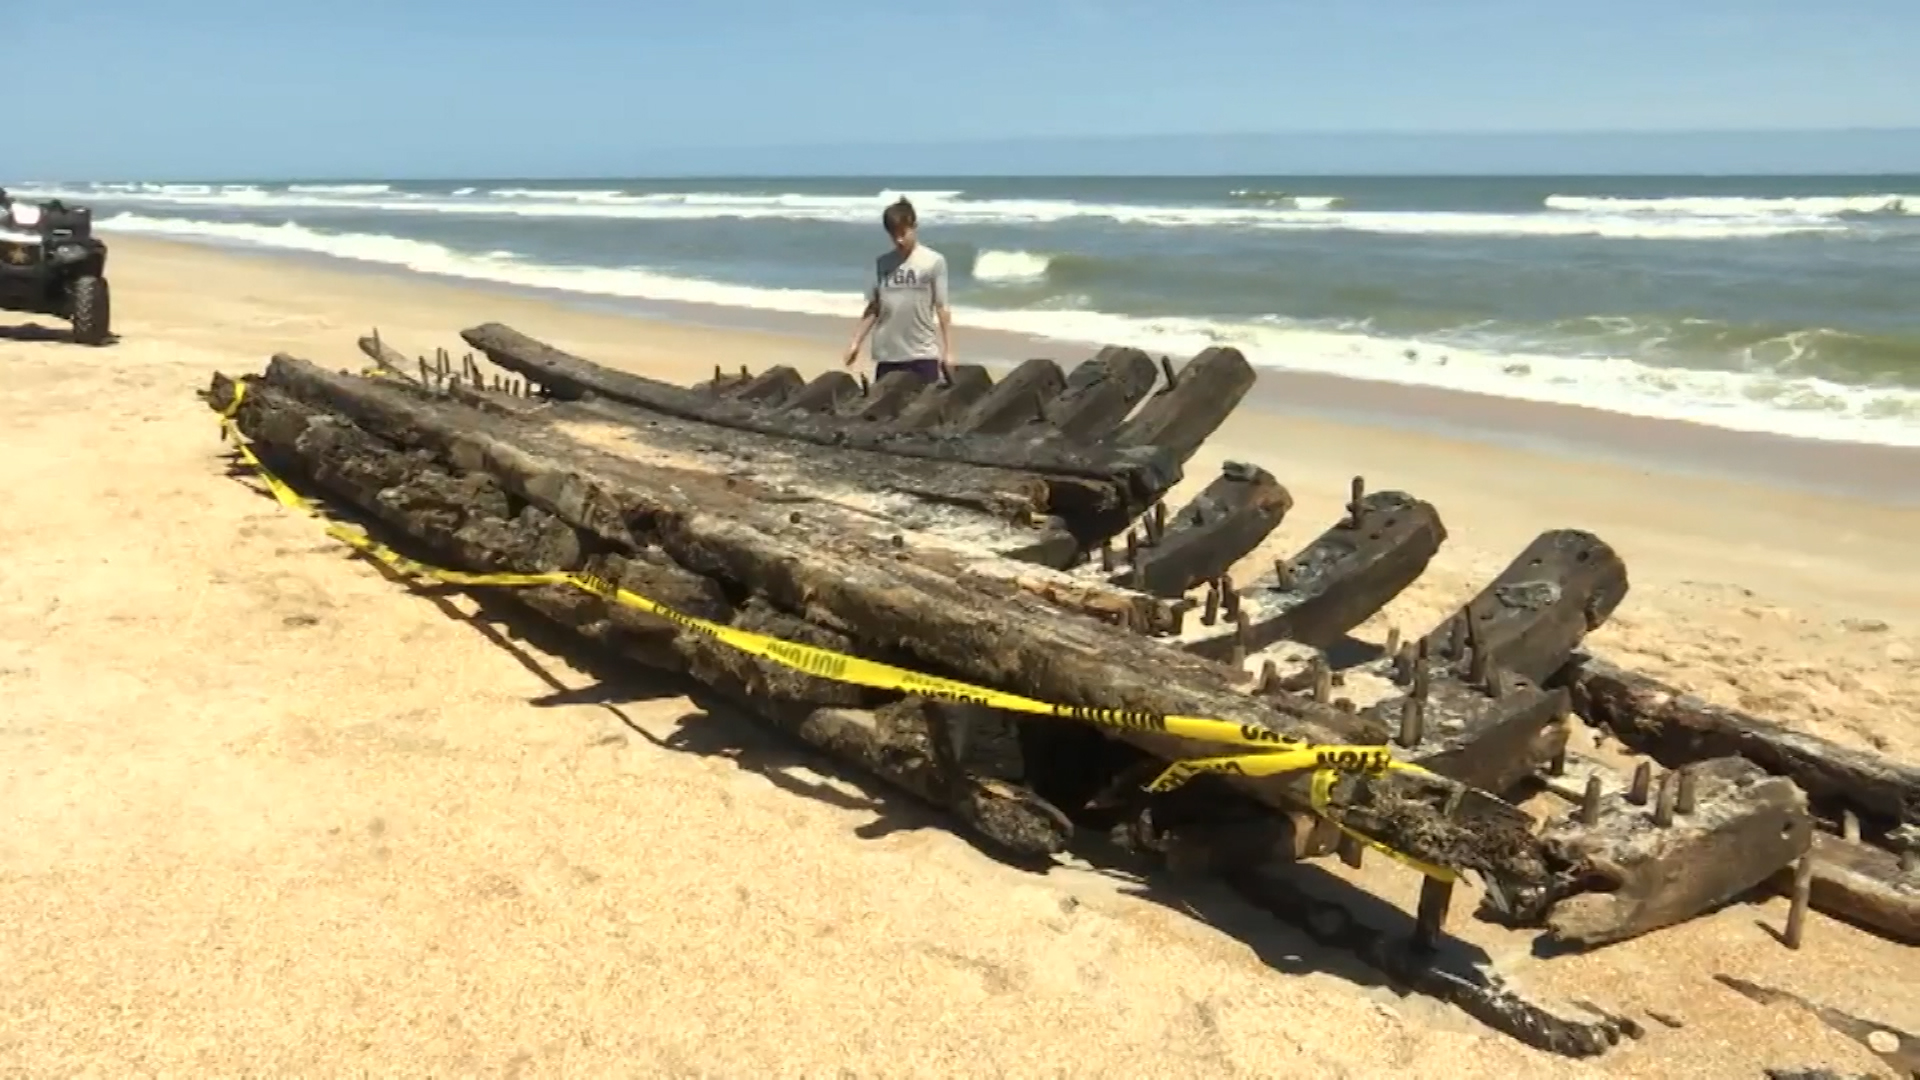 18th century shipwreck washes up in Florida - CNN Video